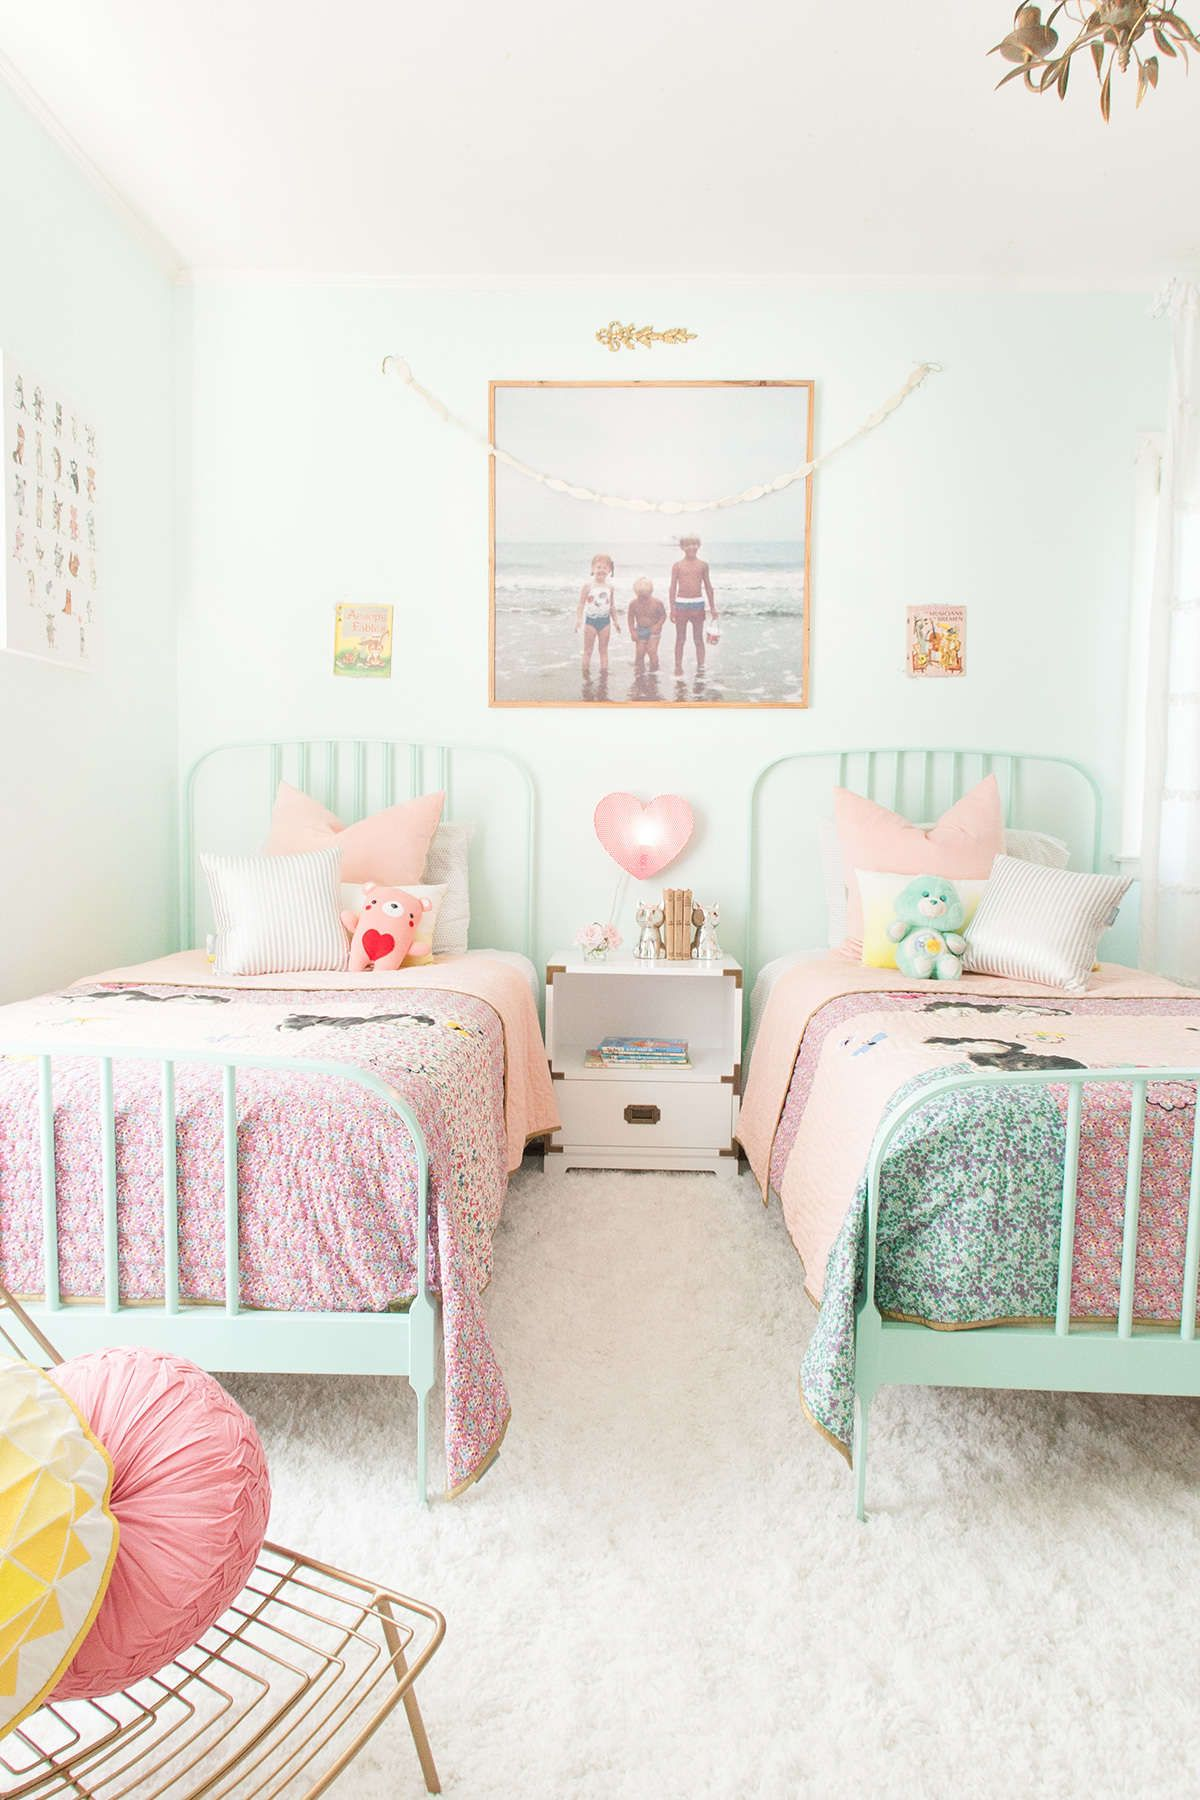 Shared room inspiration with the land of nod pinterest for Home design inspiration blog